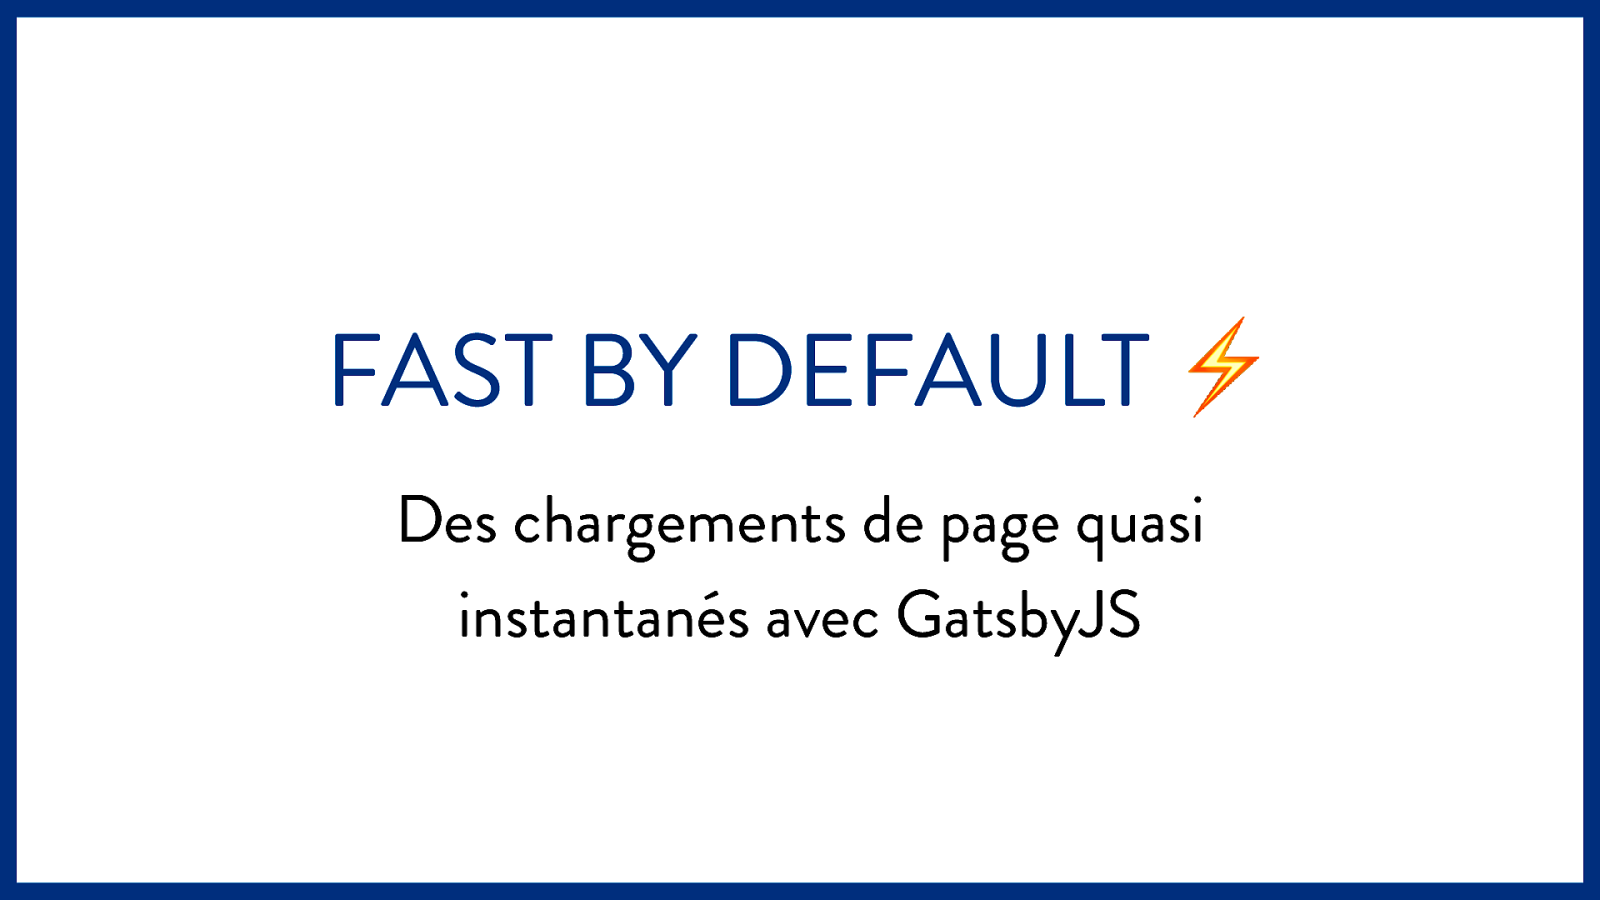 Fast by Default : Near Instant Load Times at Scale with GatsbyJS by Matthieu Auger